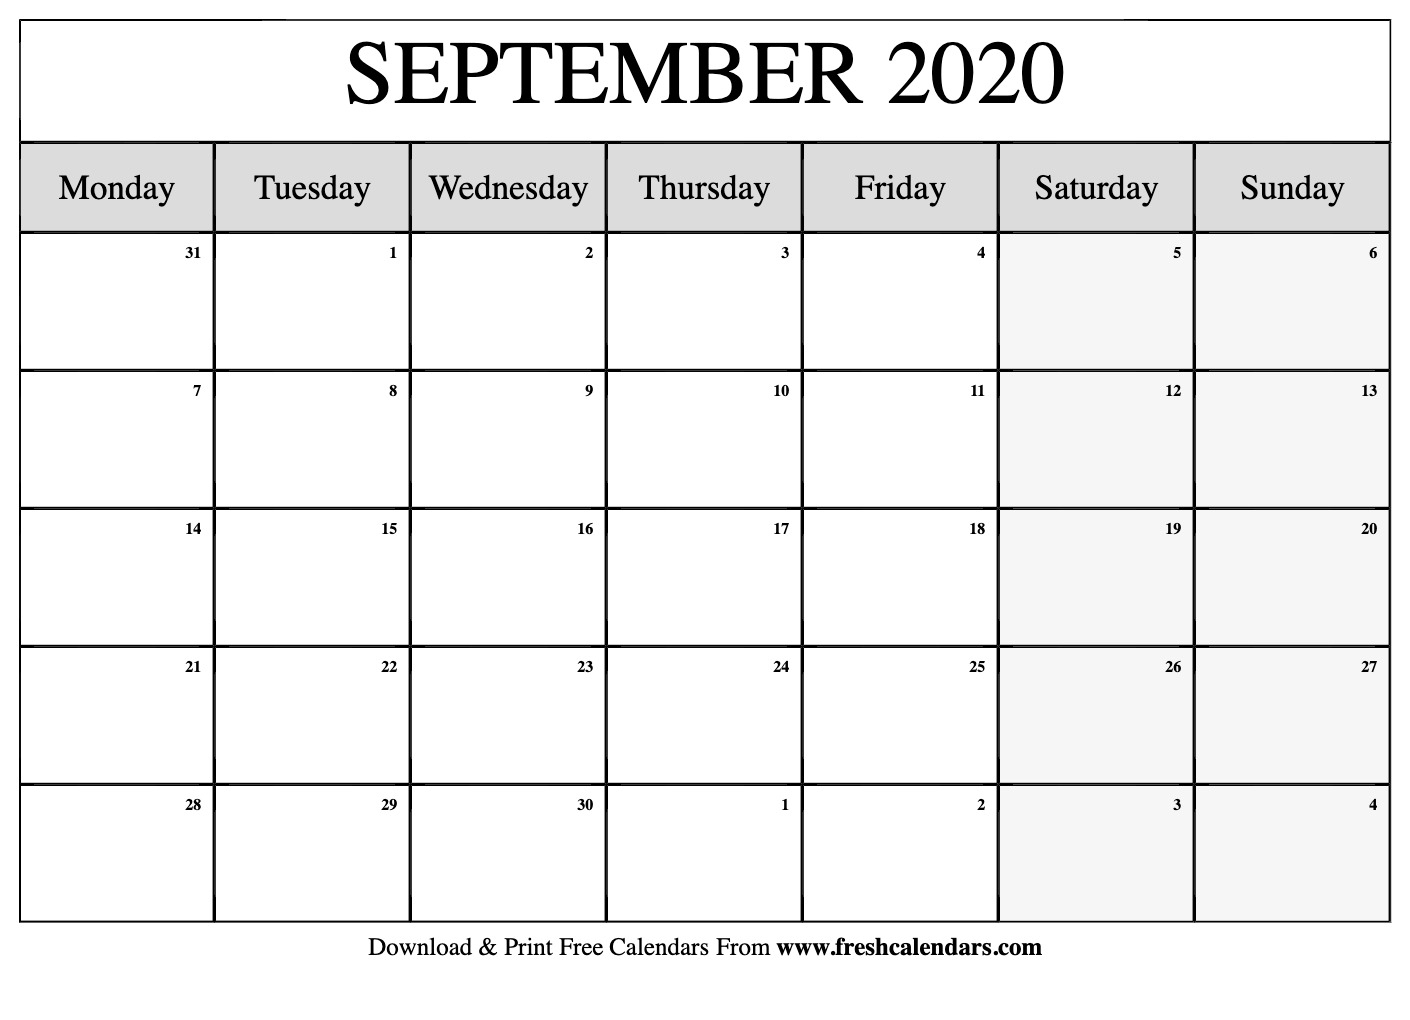 September 2020 Calendar Printable - Fresh Calendars